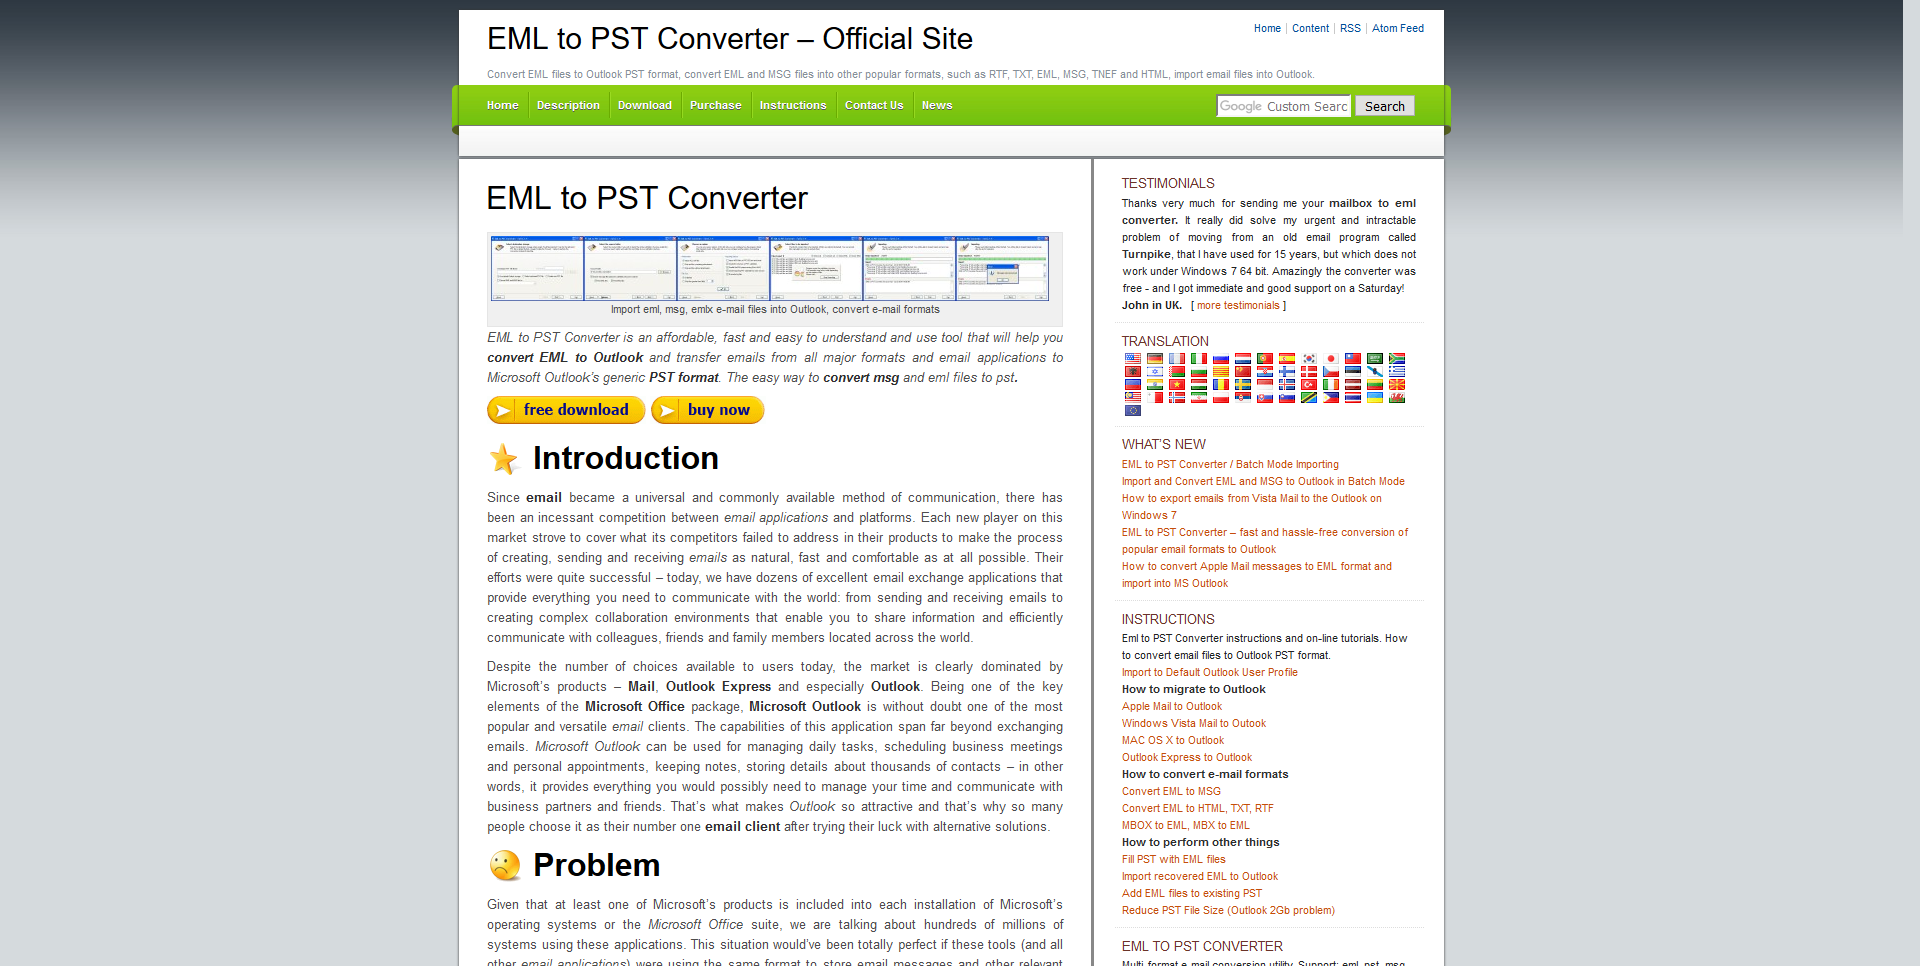 Live Mail to PST Converter